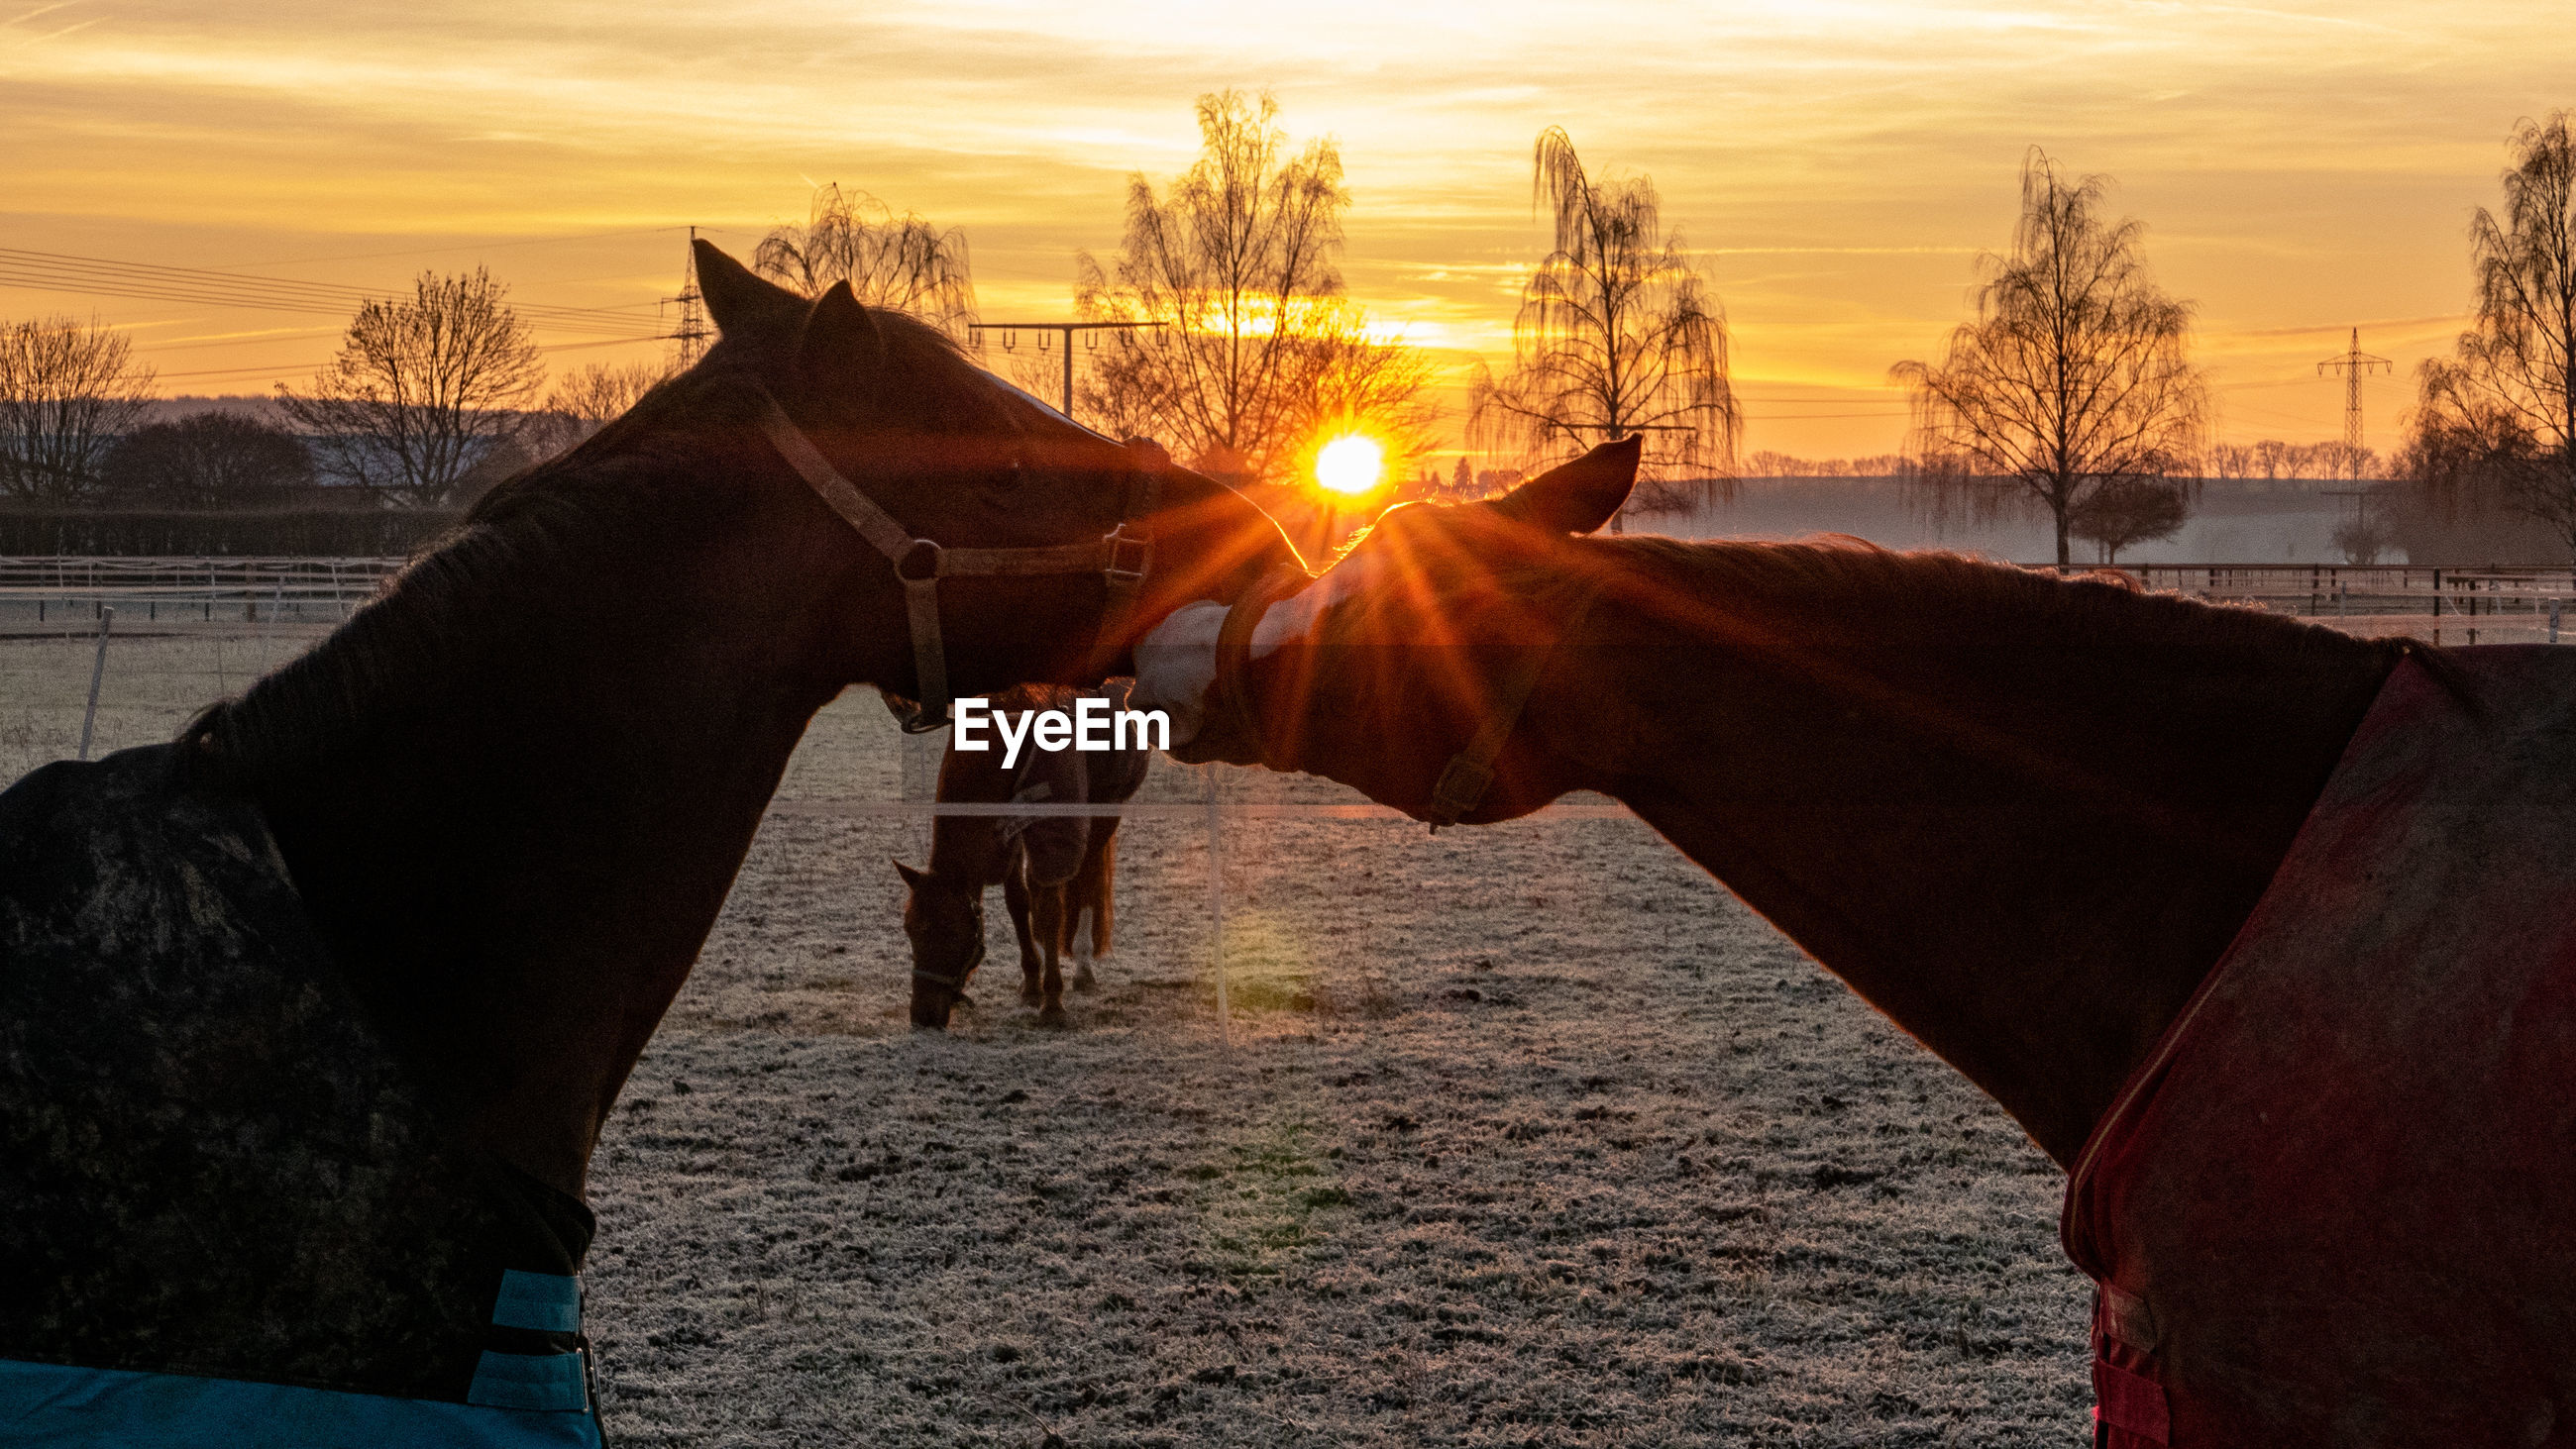 VIEW OF HORSE IN RANCH AT SUNSET